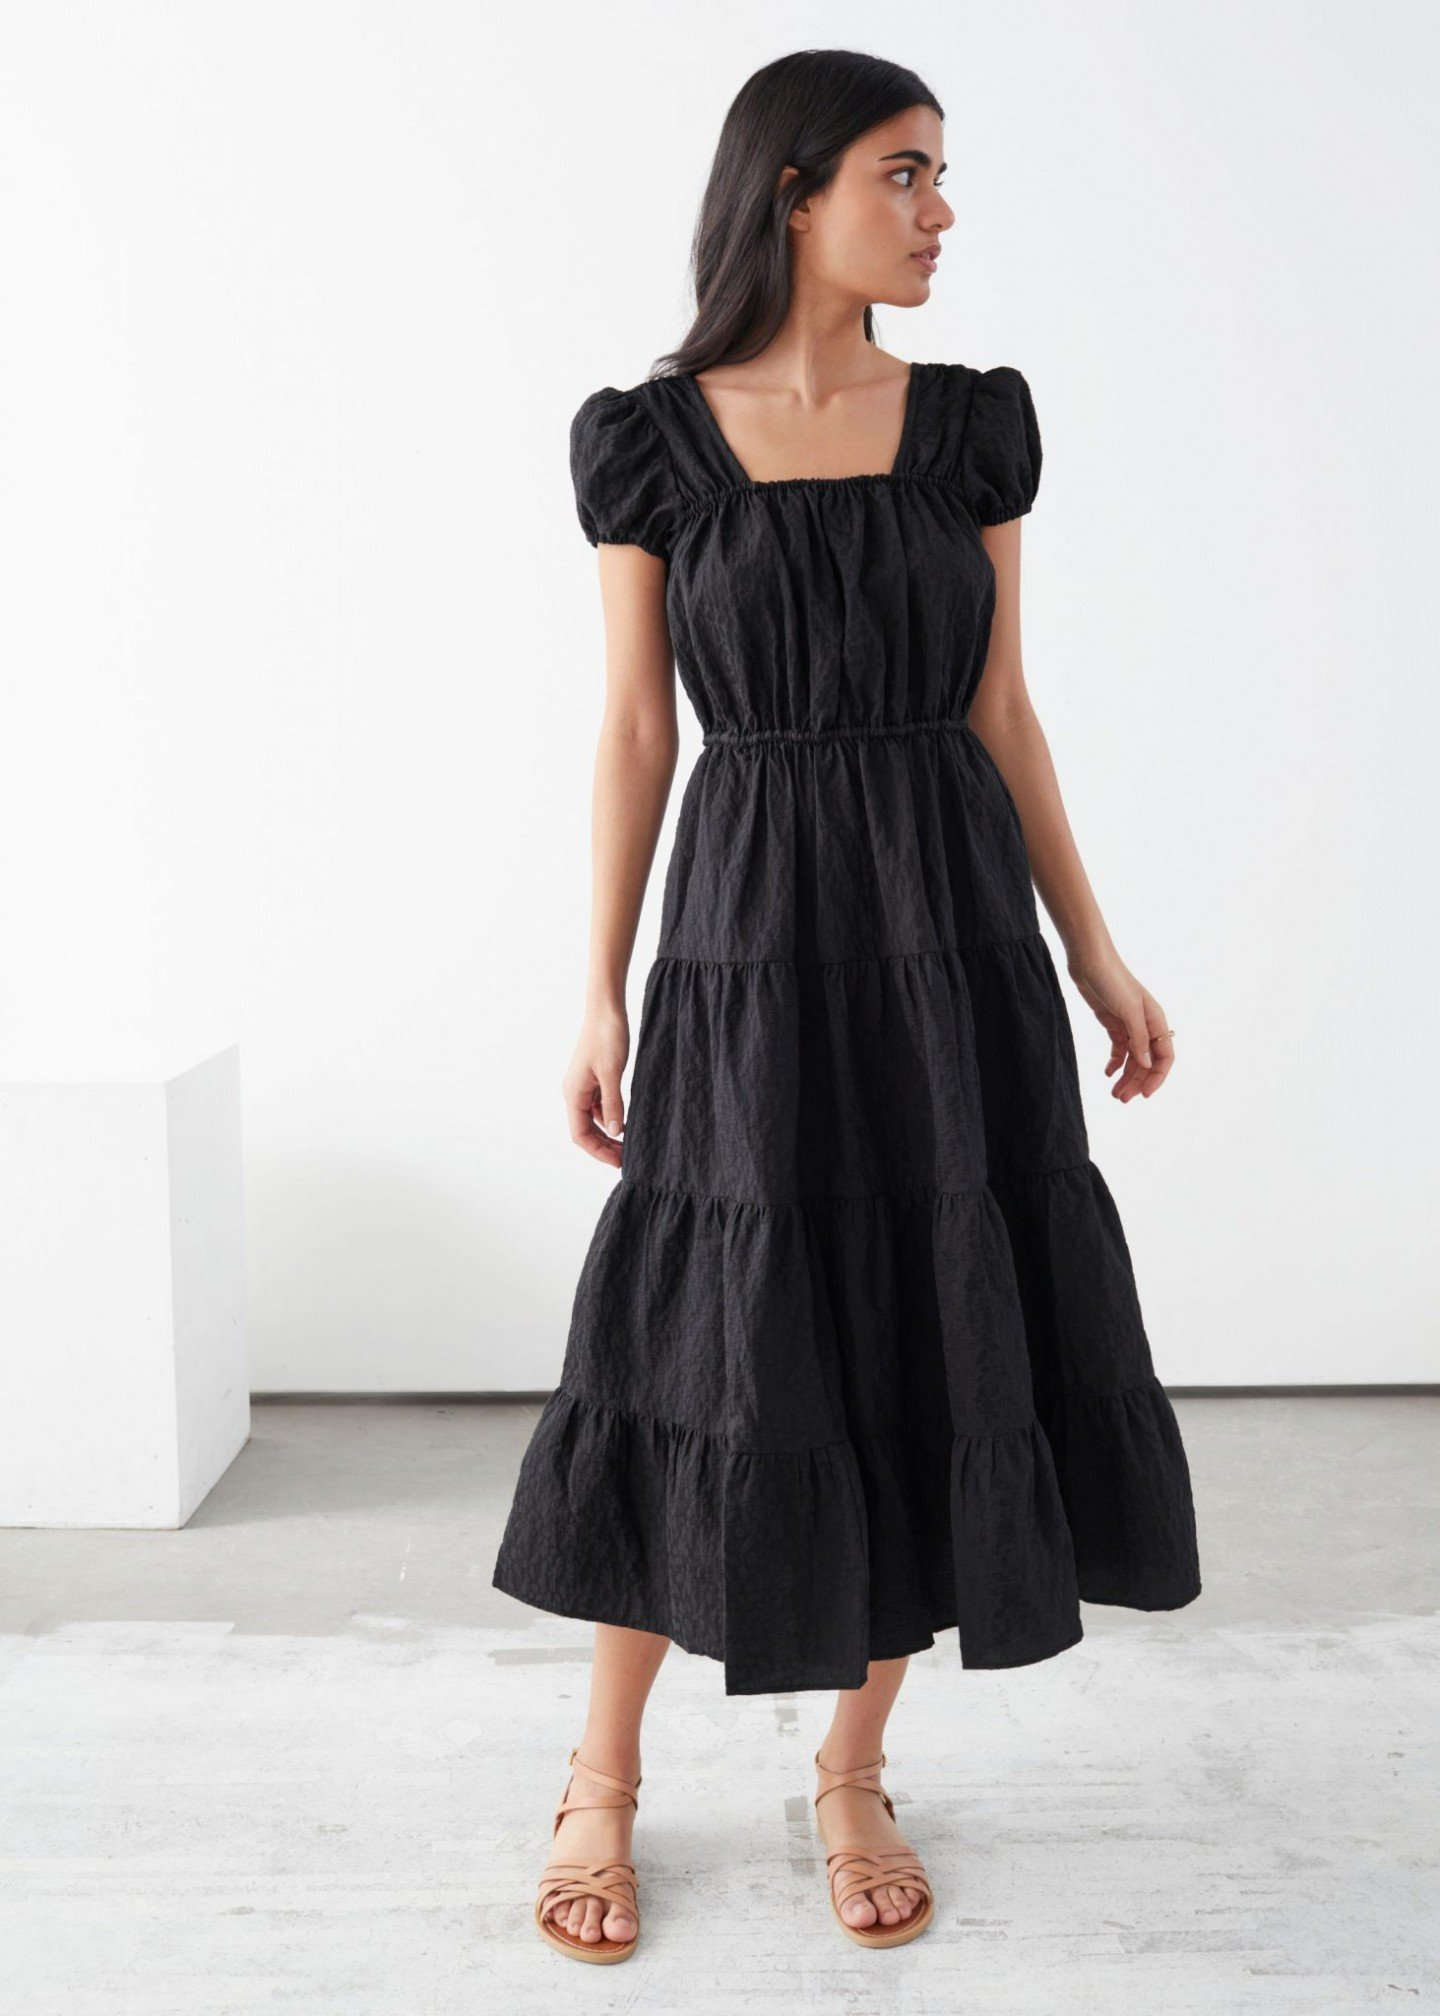 & OTHER STORIES A-Line Jacquard Ruffle Midi Dress